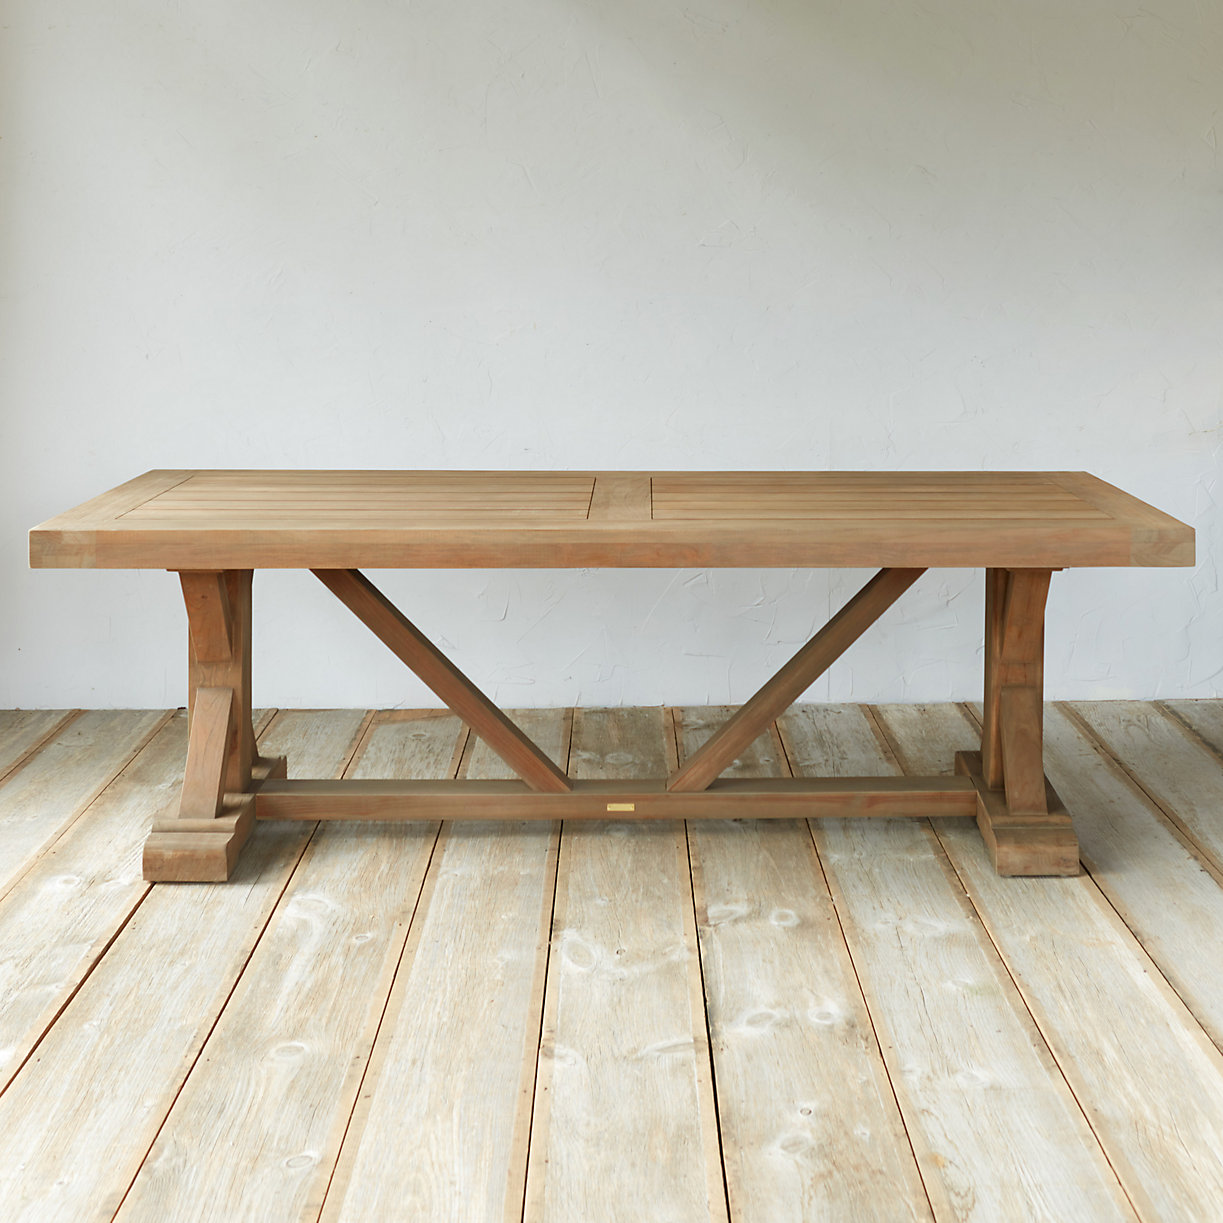 Protected Teak Trestle Dining Table 8 Terrain : 32366783014azoom2 from www.shopterrain.com size 1223 x 1223 jpeg 218kB